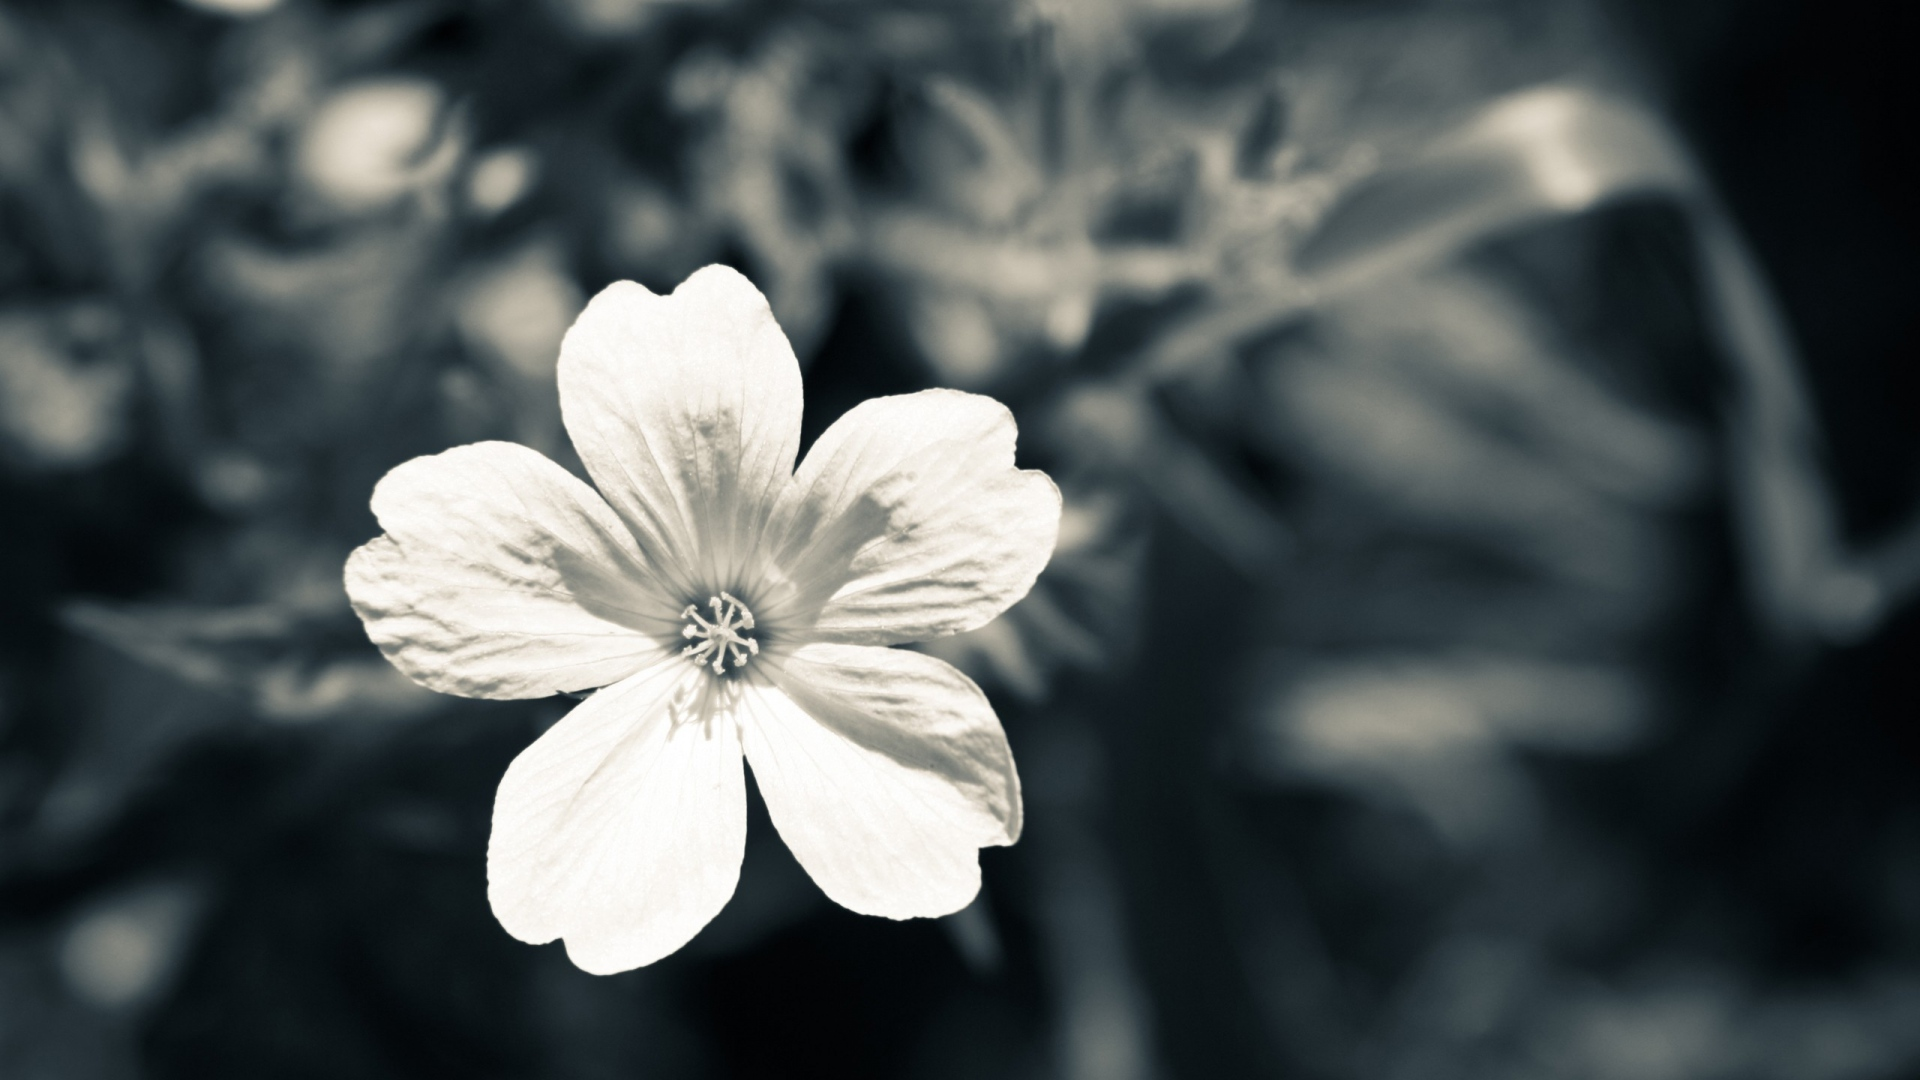 Black And White Flower - Photography Wallpapers #468469 on ...